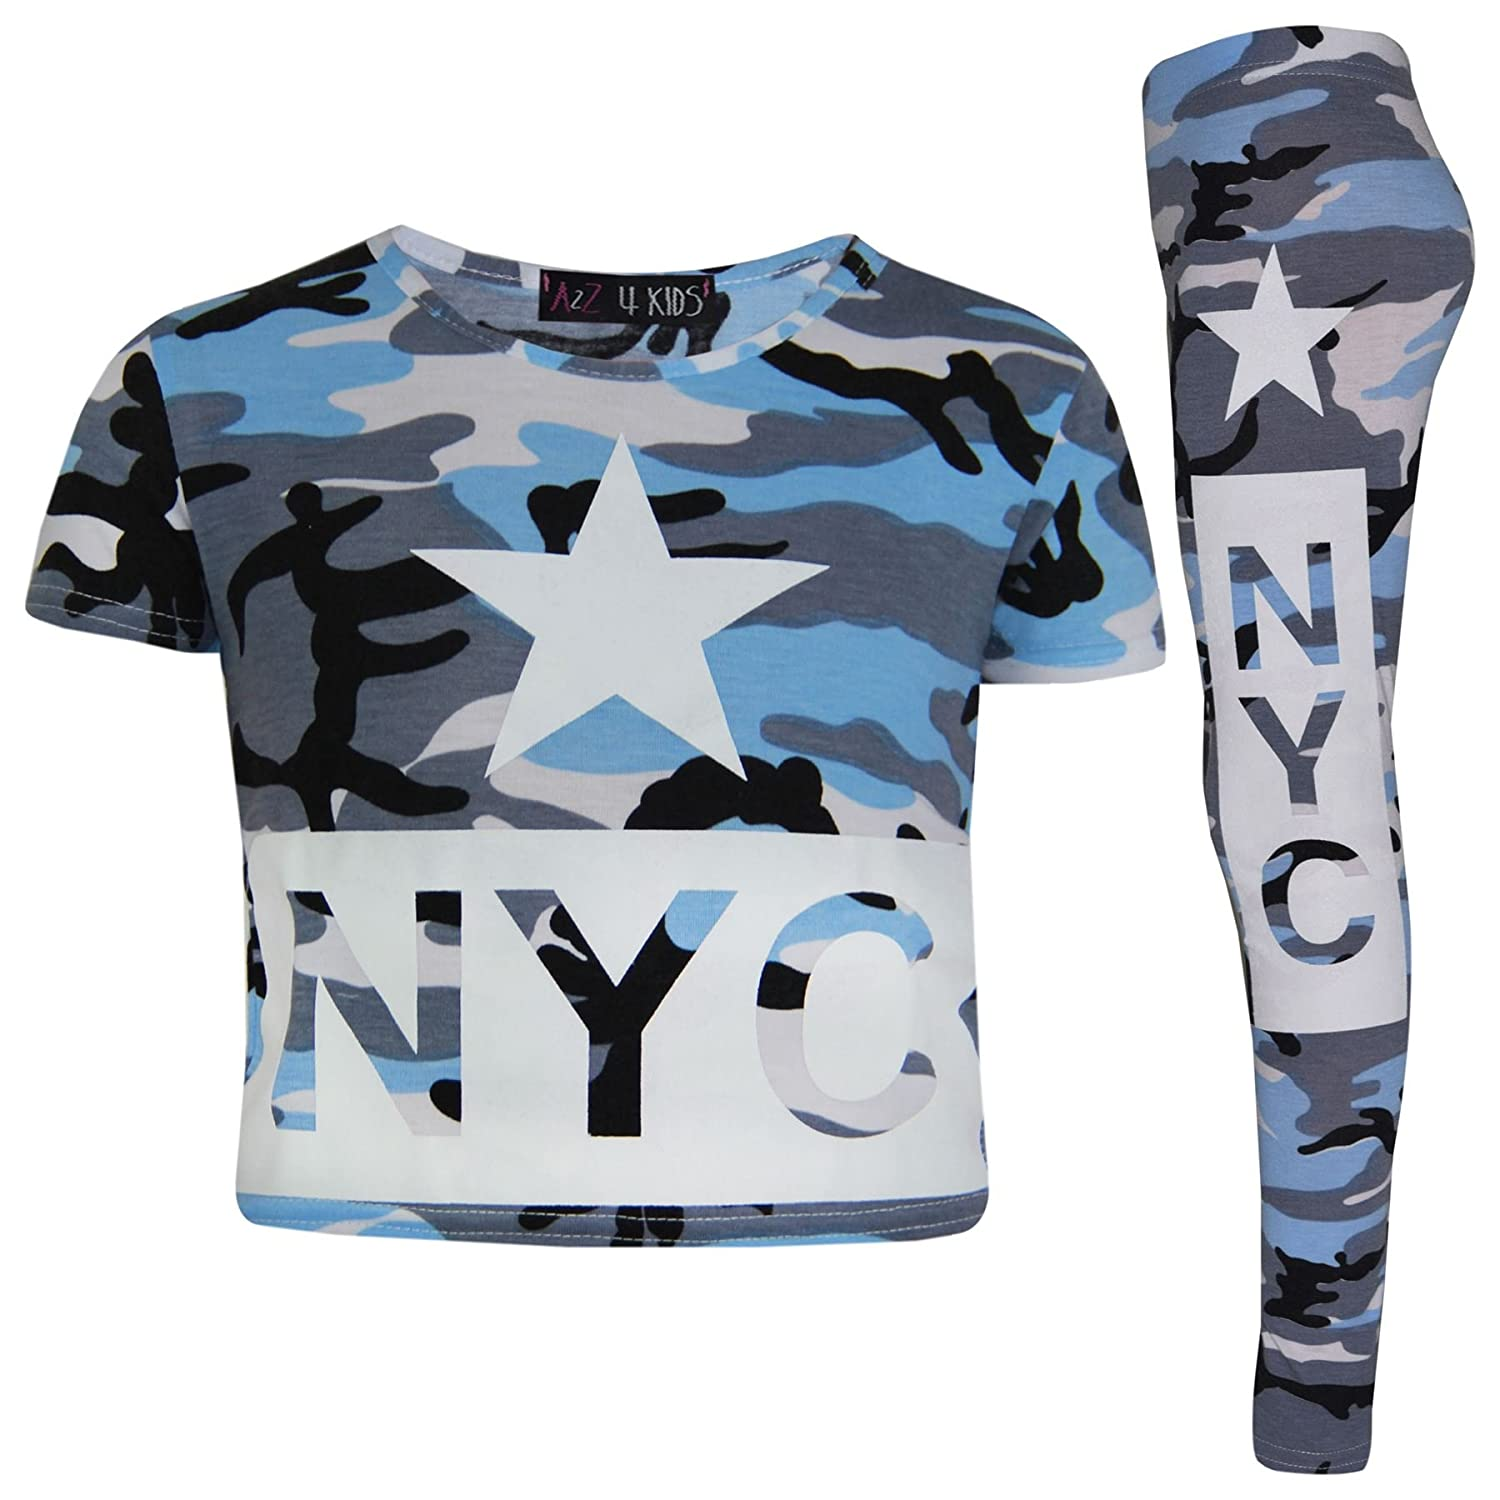 A2Z 4 Kids® Girls Top Kids NYC Camouflage Print Trendy Crop Tops & Fashion Legging Set Age 7 8 9 10 11 12 13 Years